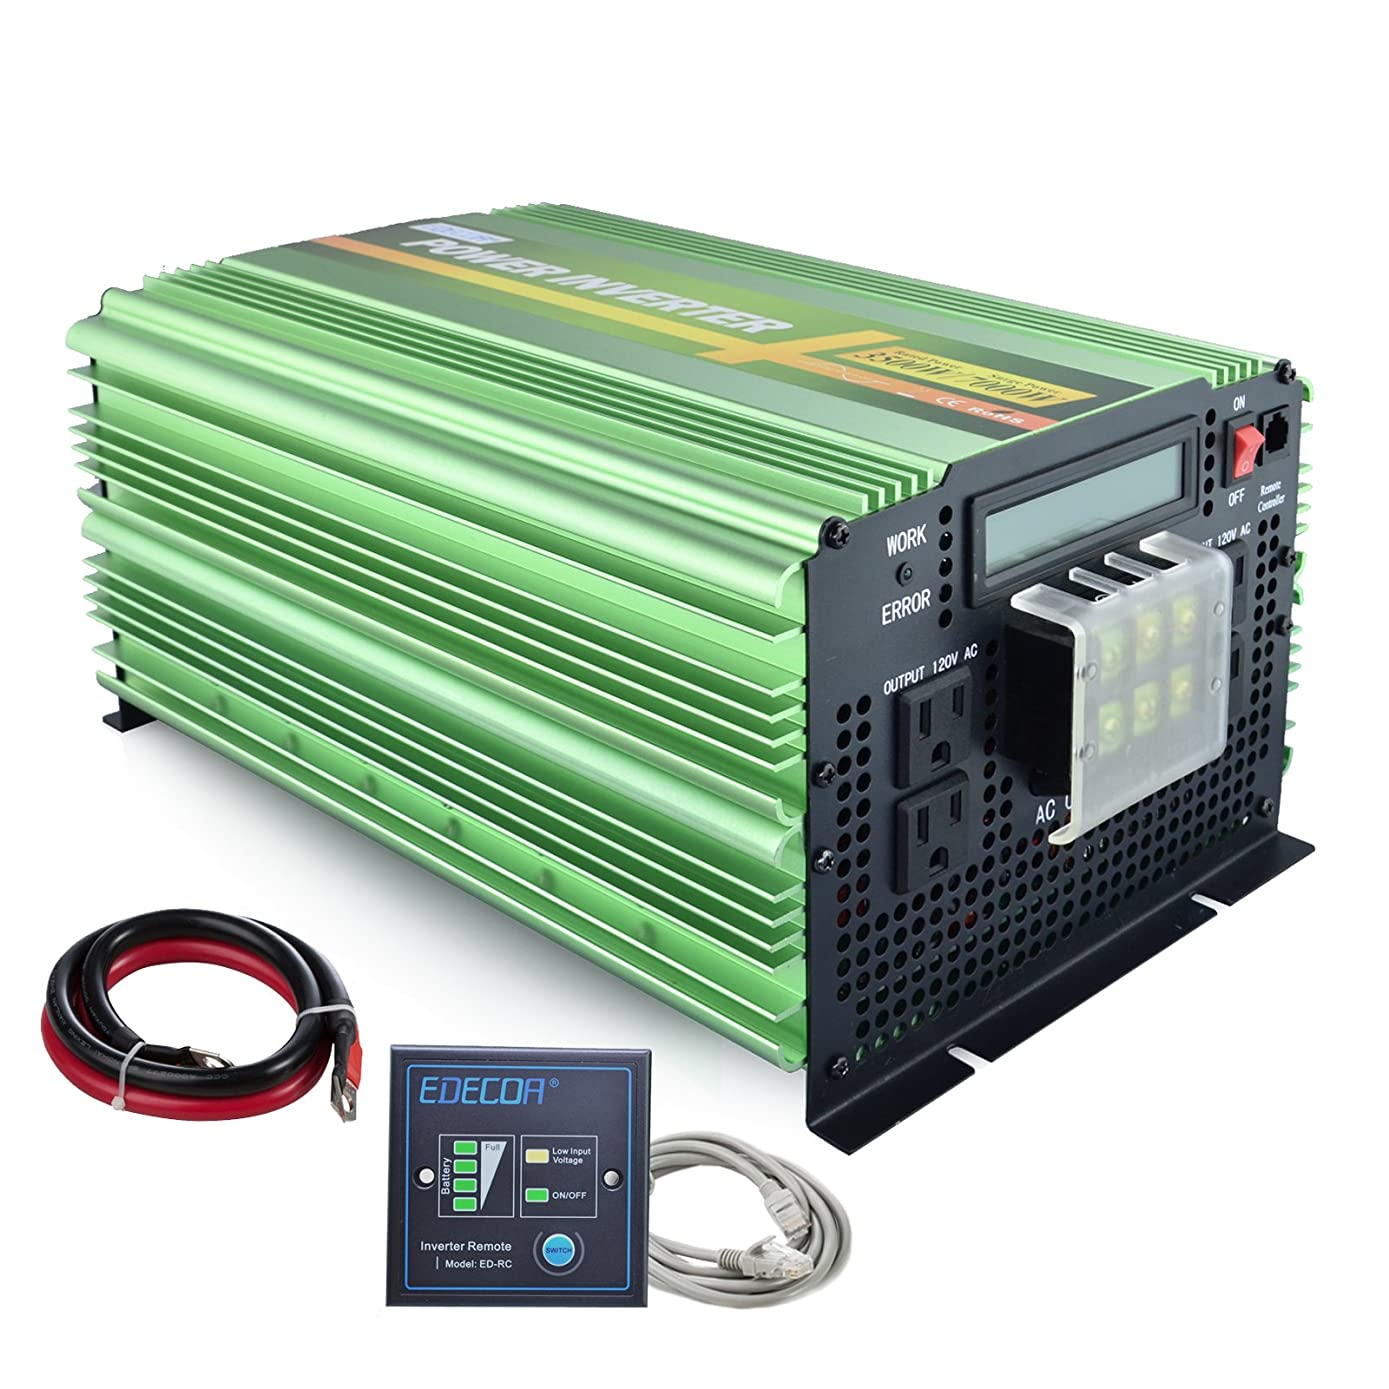 EDECOA 3500W Power Inverter Pure Sine Wave DC 12V to 110V AC with LCD Display and Remote